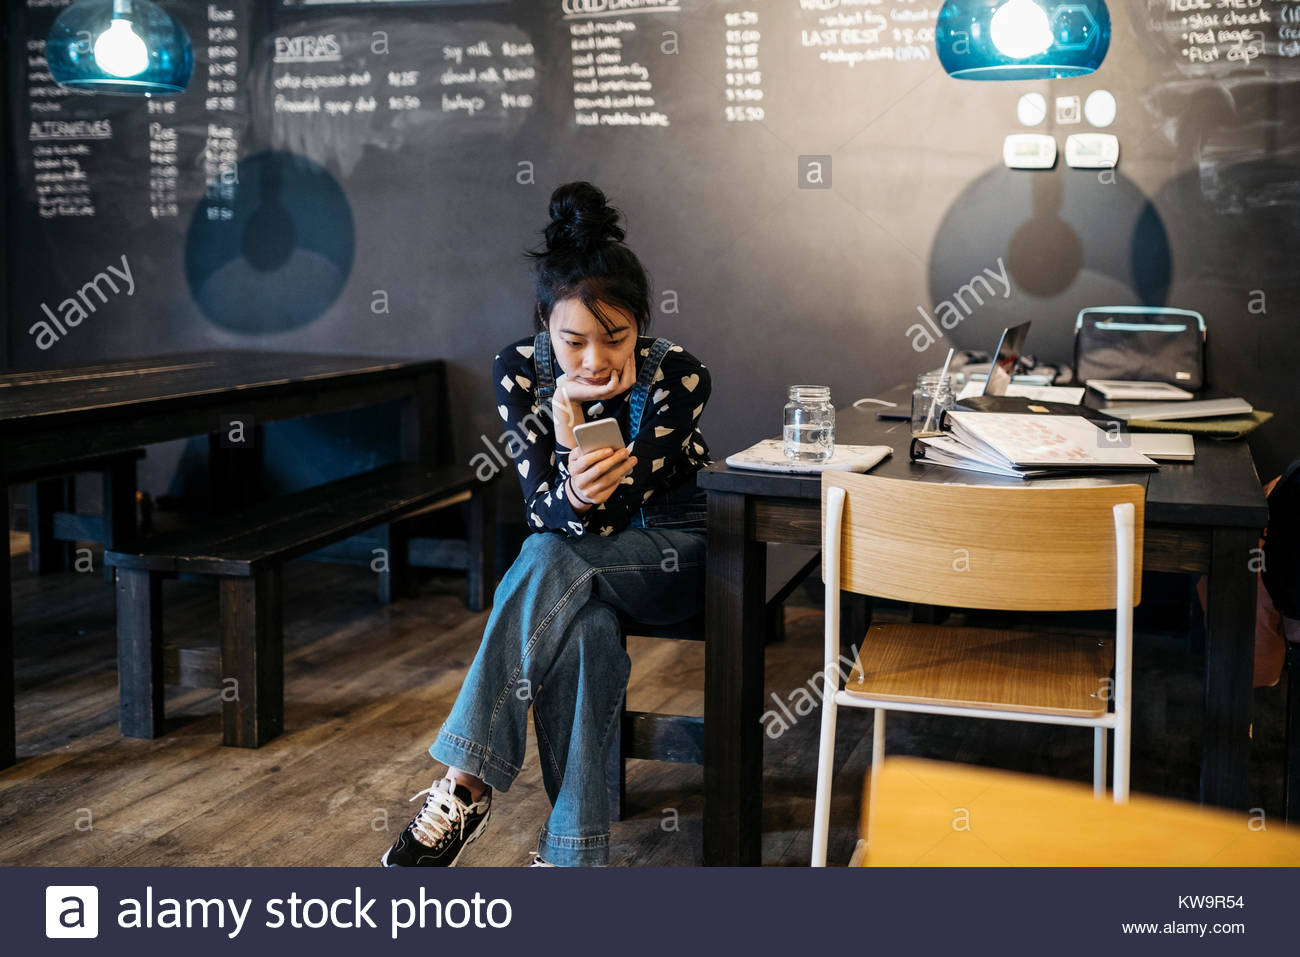 Asian girl tween texting with smart phone at cafe table Photo Stock